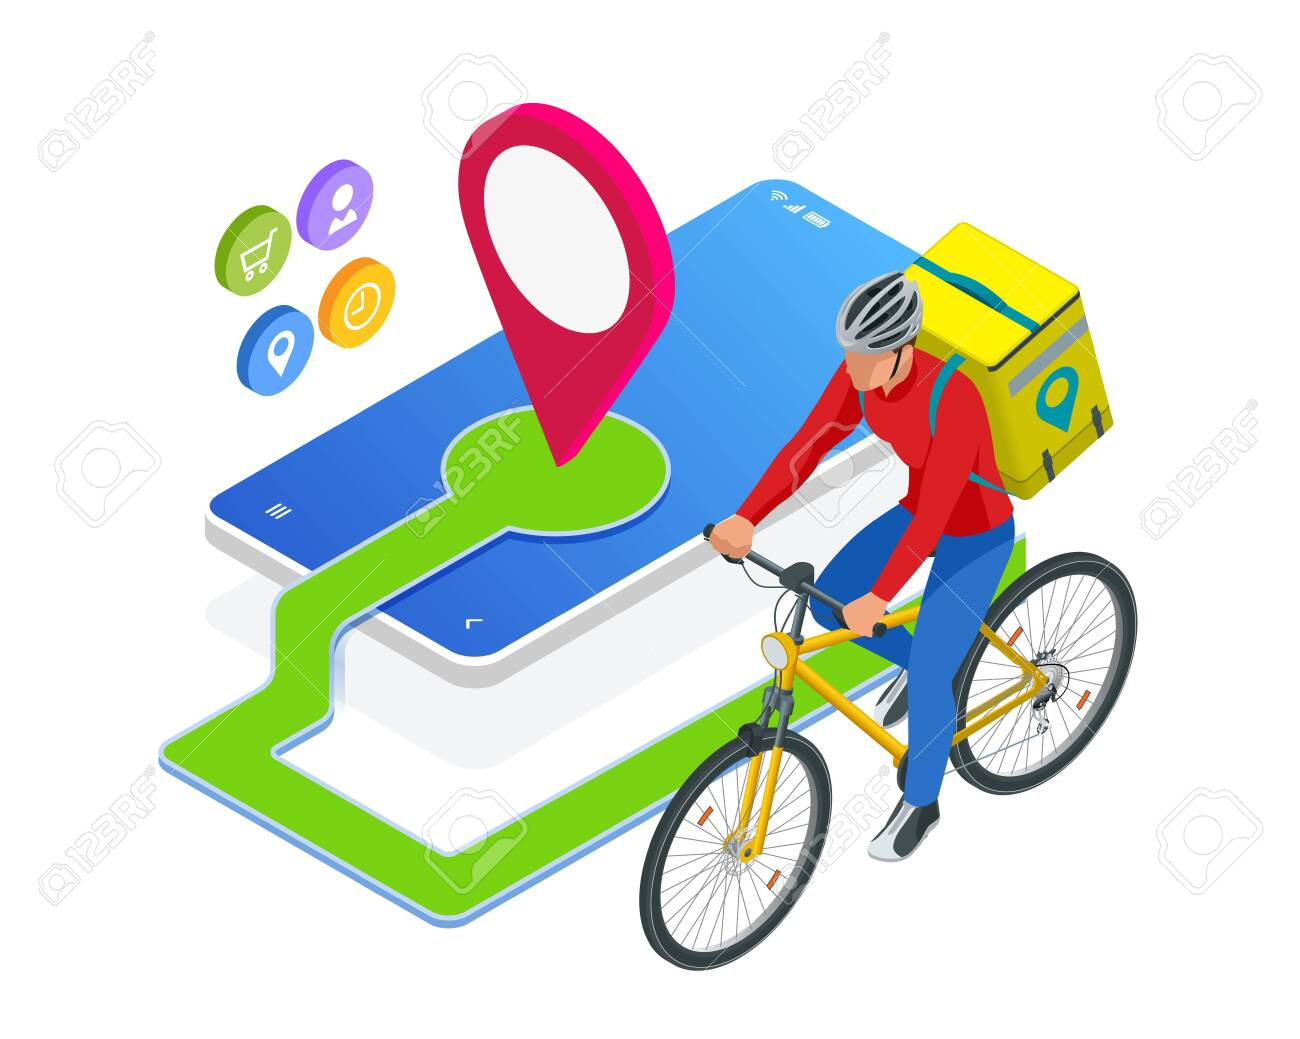 Isometric bicycle courier, Express delivery service. Courier on bicycle with parcel box on the back delivering food In city. Ecological fast delivery. City Food delivery service. Online ordering. - 141422152